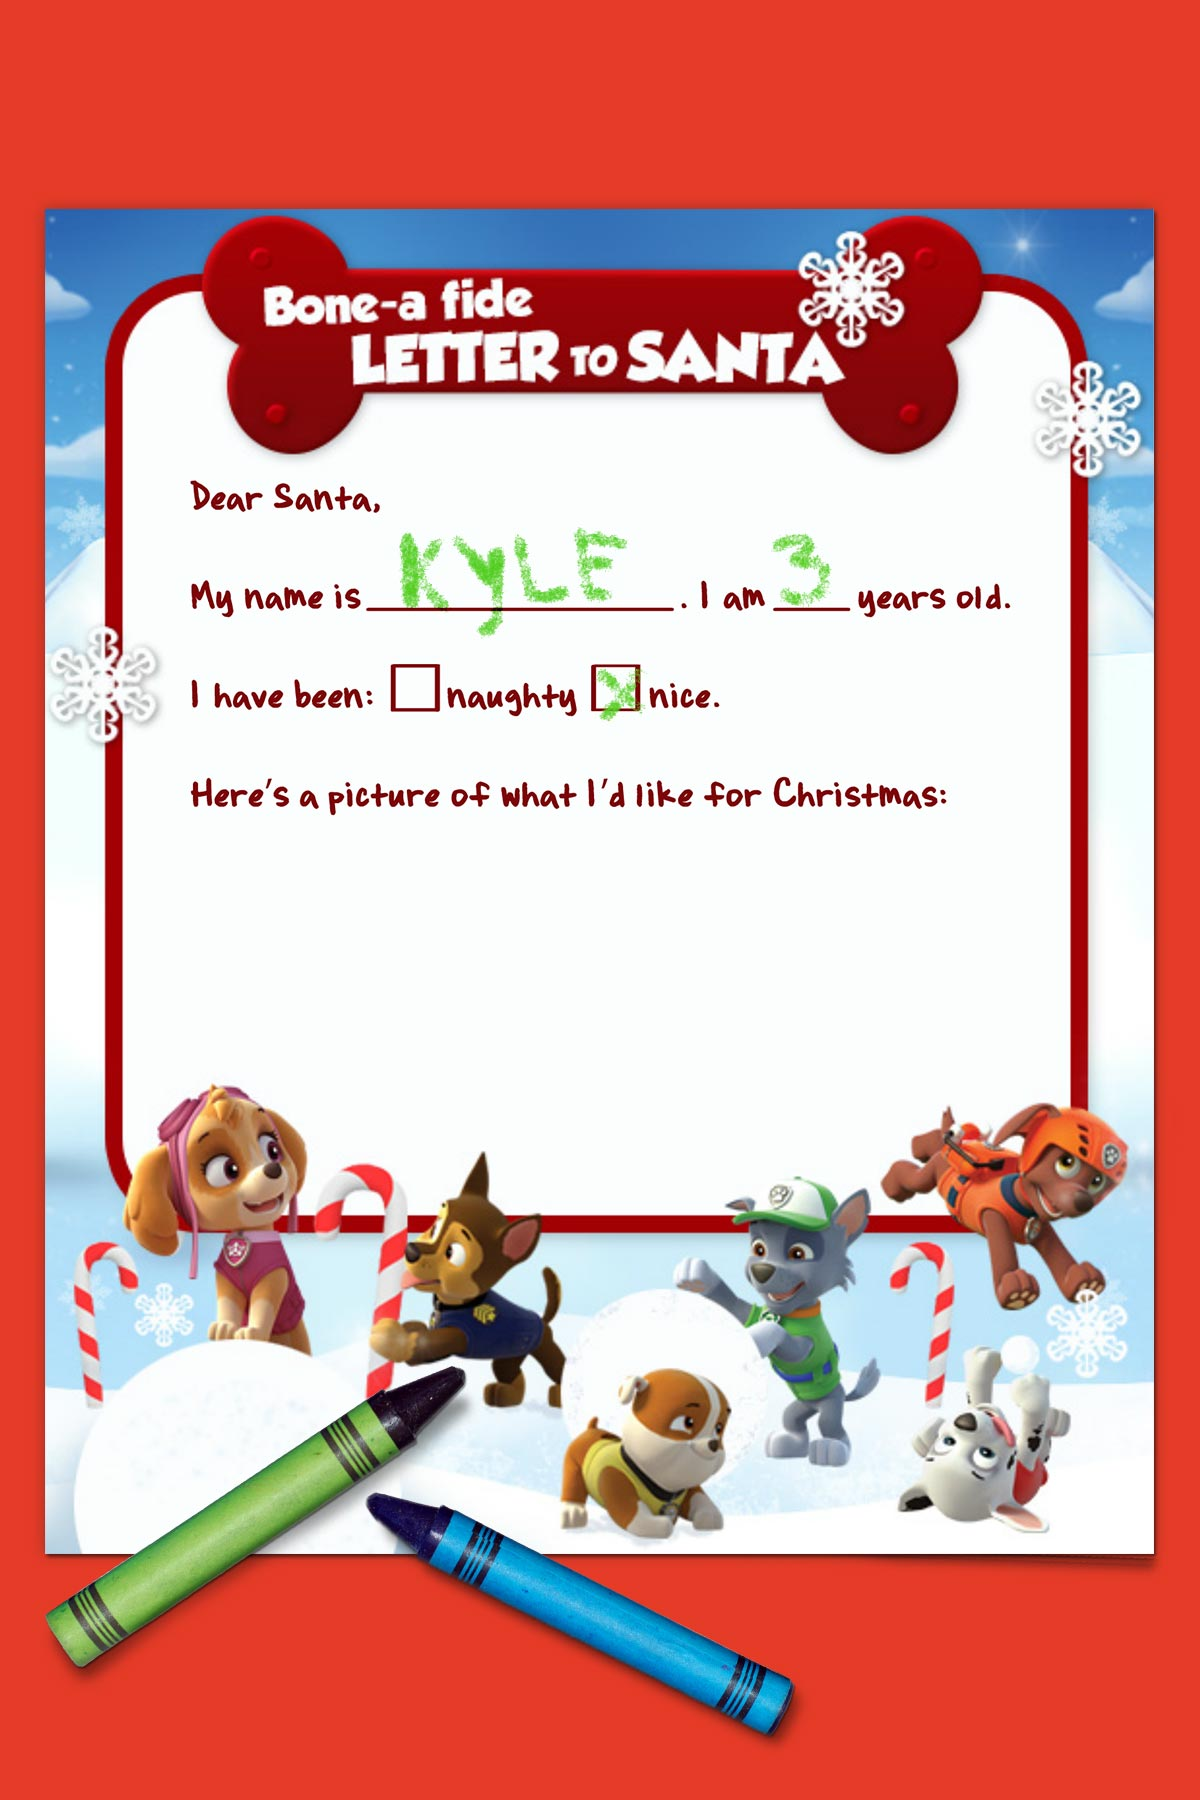 pawPatrol-letterToSanta2x3 Valentines Party Letter To Parents Template on valentine party poster, samples of letter dear parents, attendance letters to parents, leeters parents, academic failure letters to parents, valentine letter class parents, valentine cards to make for parents, valentine's note home to parents, valentine school parent letter, valentine party games, holiday christmas party letter parents, valentine for parents sample letters, valentine preschool parent letters, valentine take home sample letters, valentine day poems from toddlers to parents, valentine classroom party note, valentine card ideas for parents, valentine's letter for parents, valentine's poems to parents, valentine party handouts,